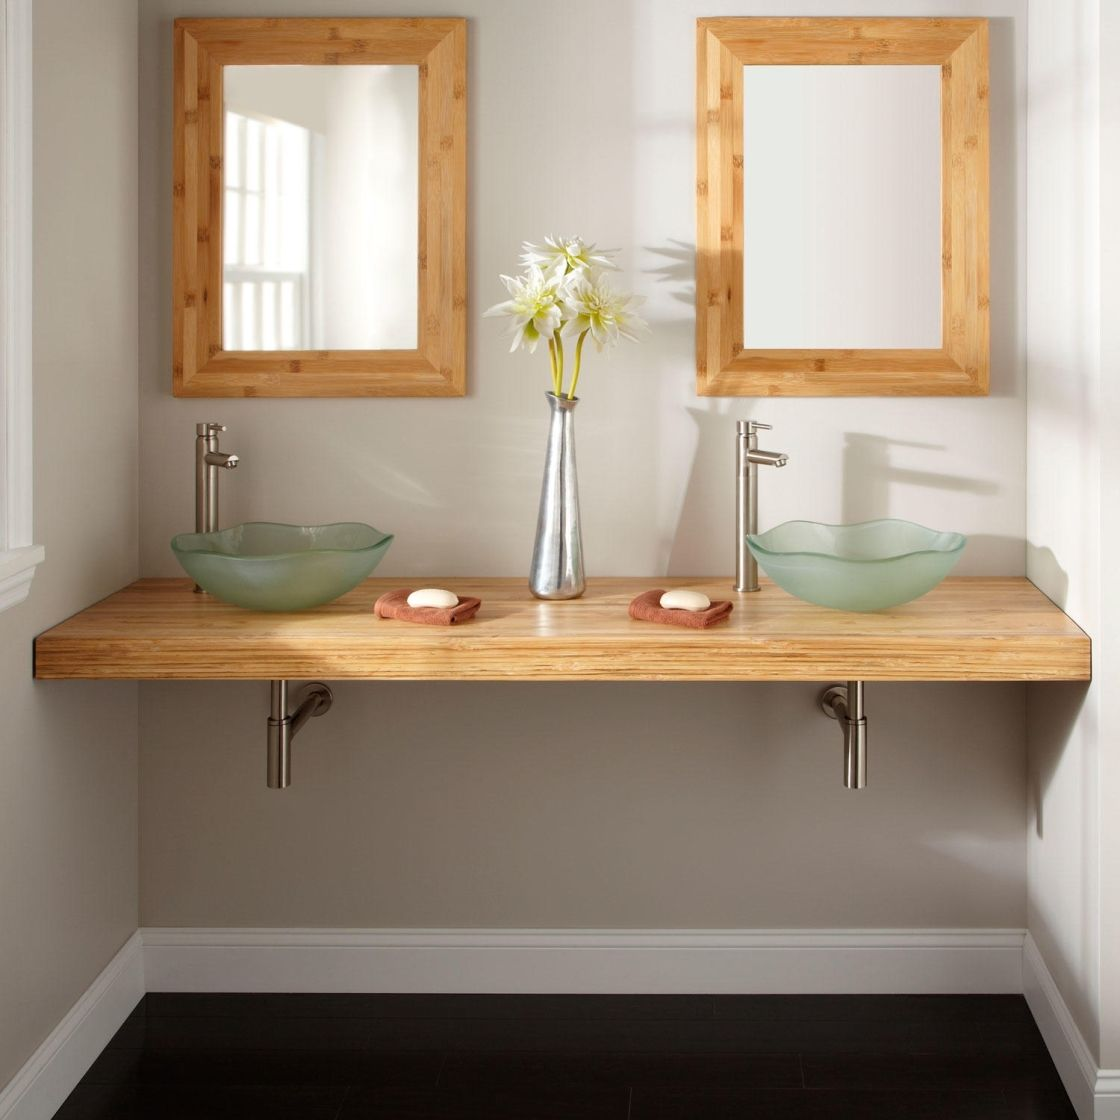 Diy Custom Floating Bathroom Vanity Design In Solid Natural Bamboo